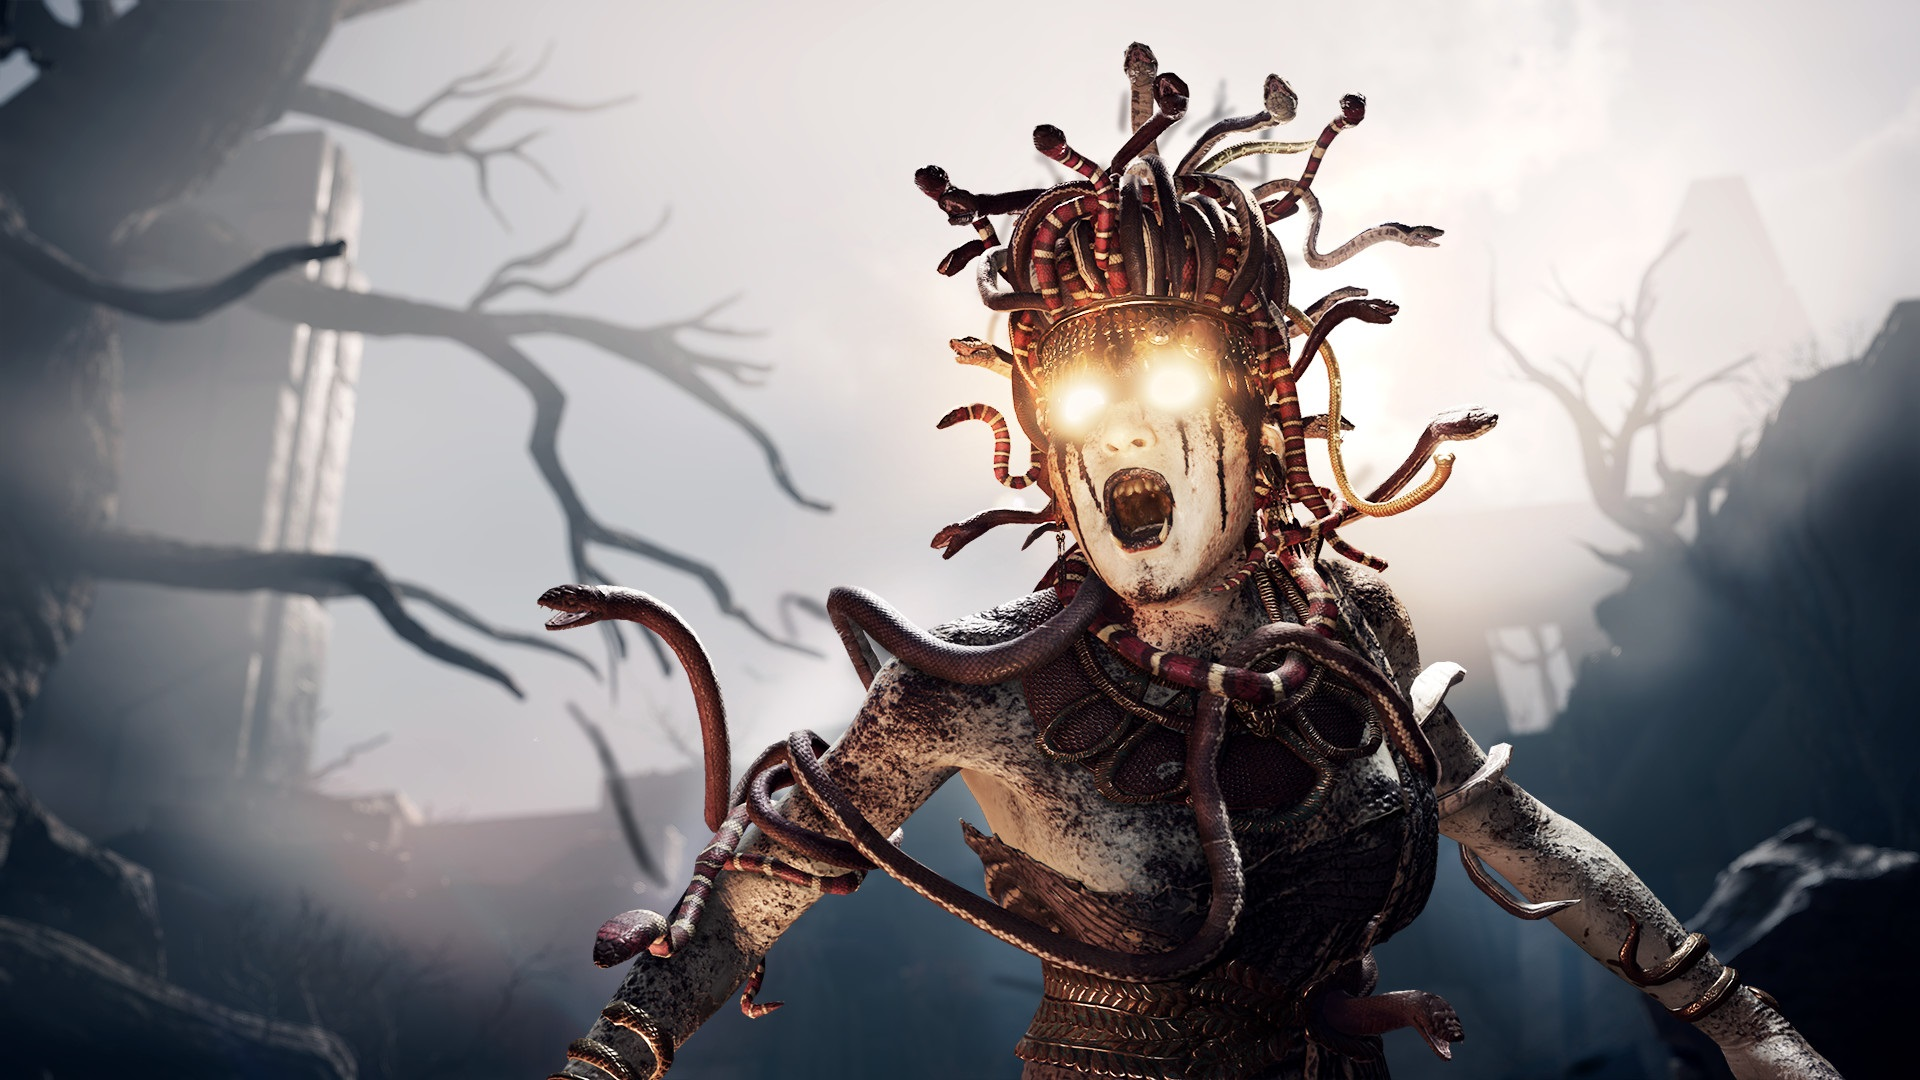 Assassin's Creed Odyssey's monsters are real | PCGamesN